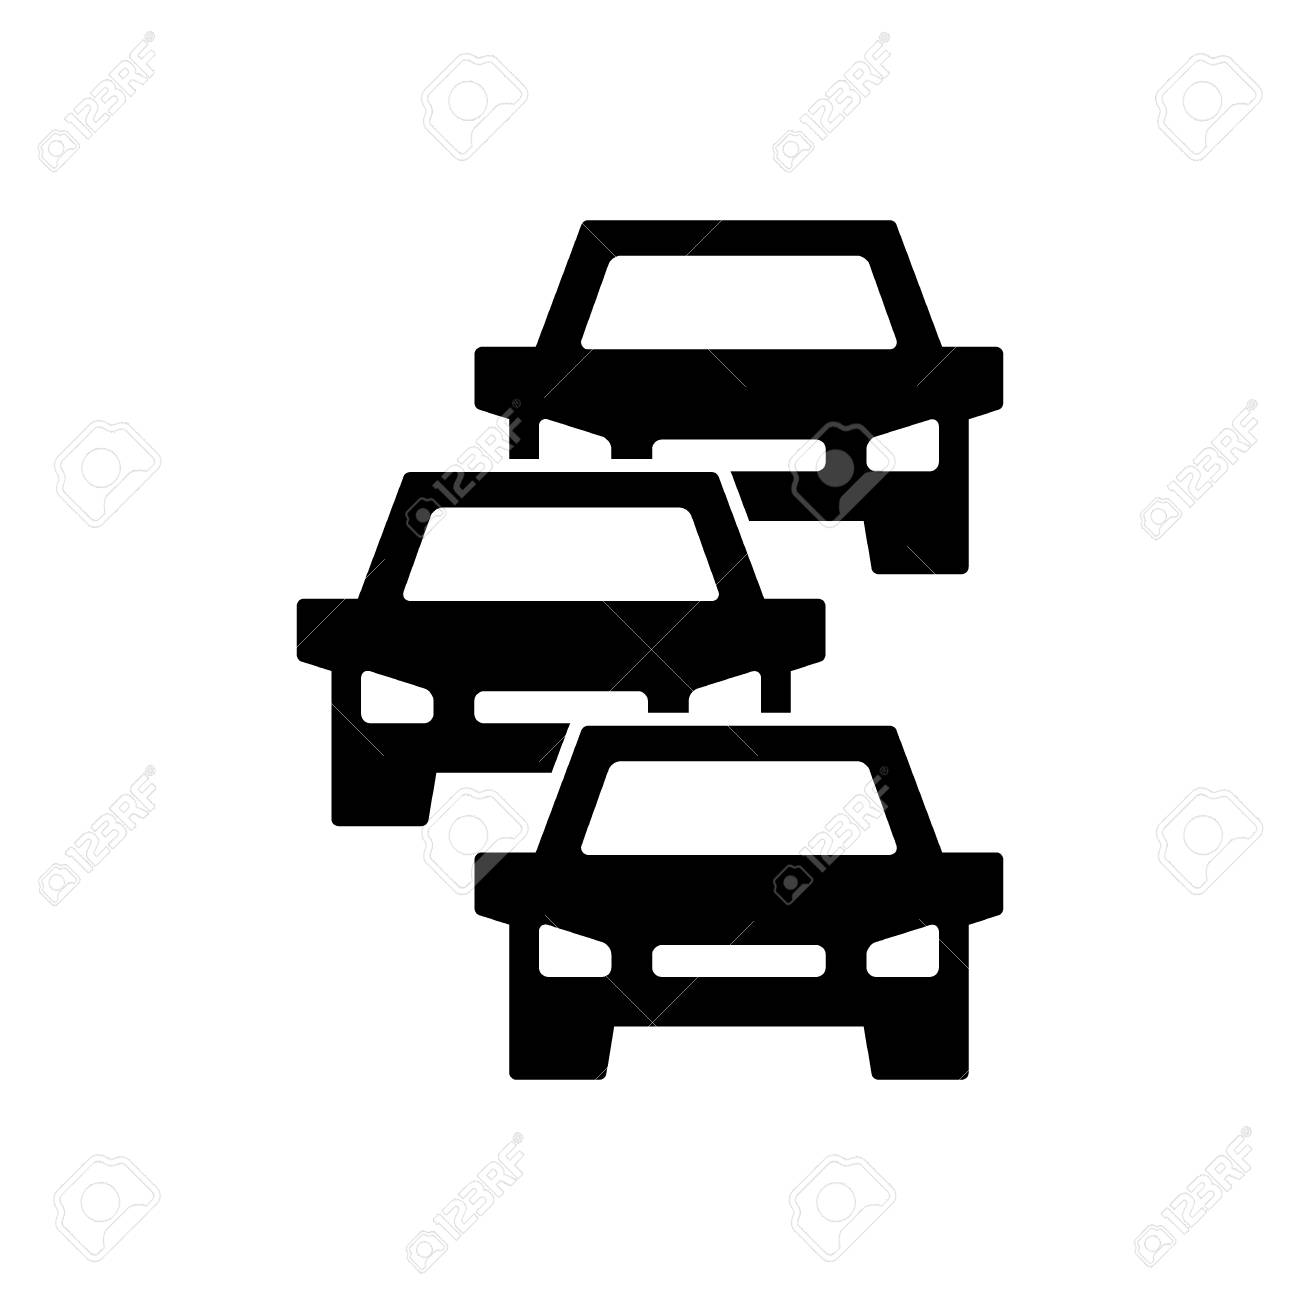 Traffic jam icon, symbol and sign isolated on white - 108563476